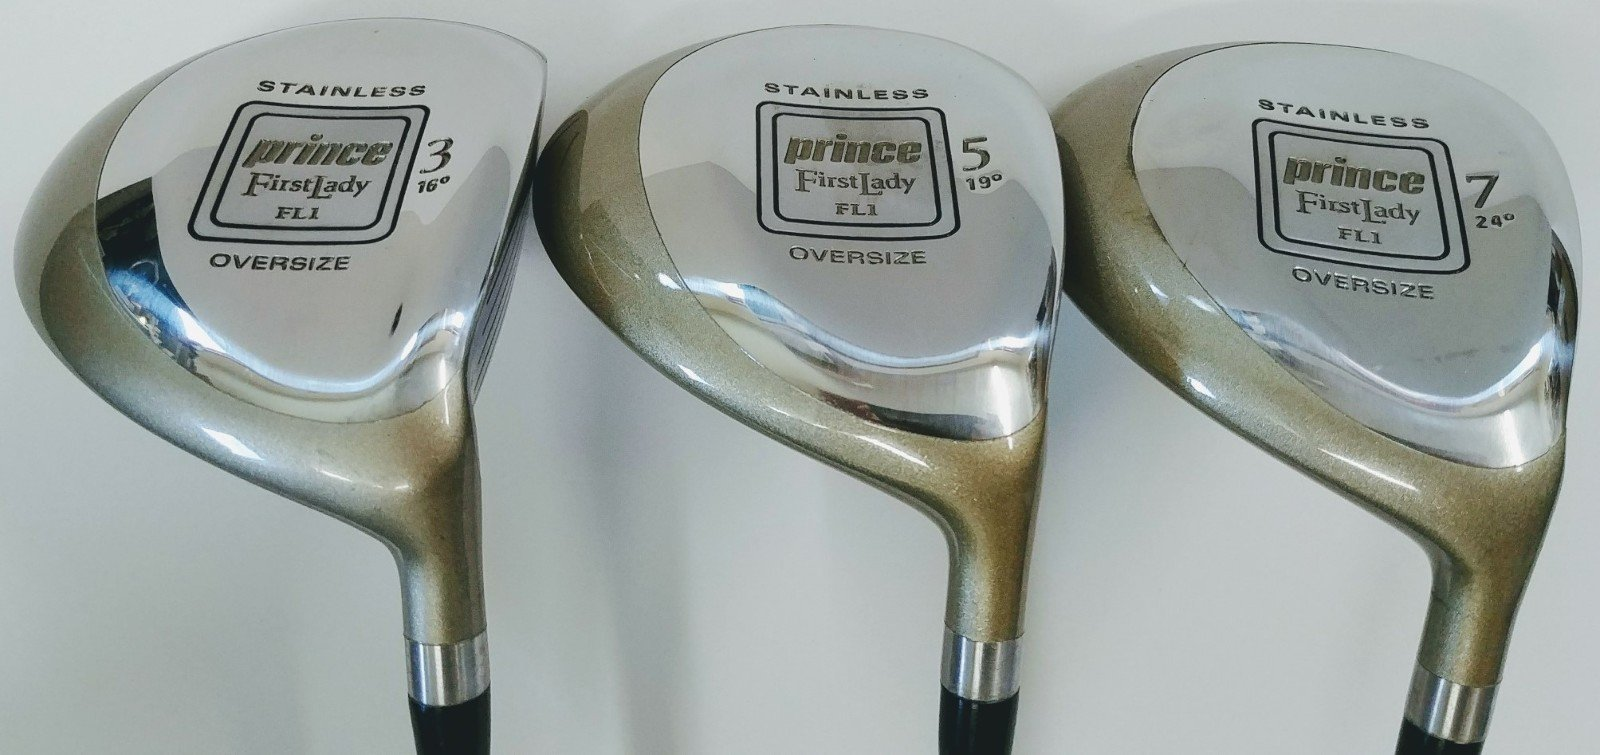 Prince First Lady FL1, Set of 3 Women's (3, 5, 7) Fairway Wood Golf Clubs, Oversized, Graphite Shaft, Right-Handed